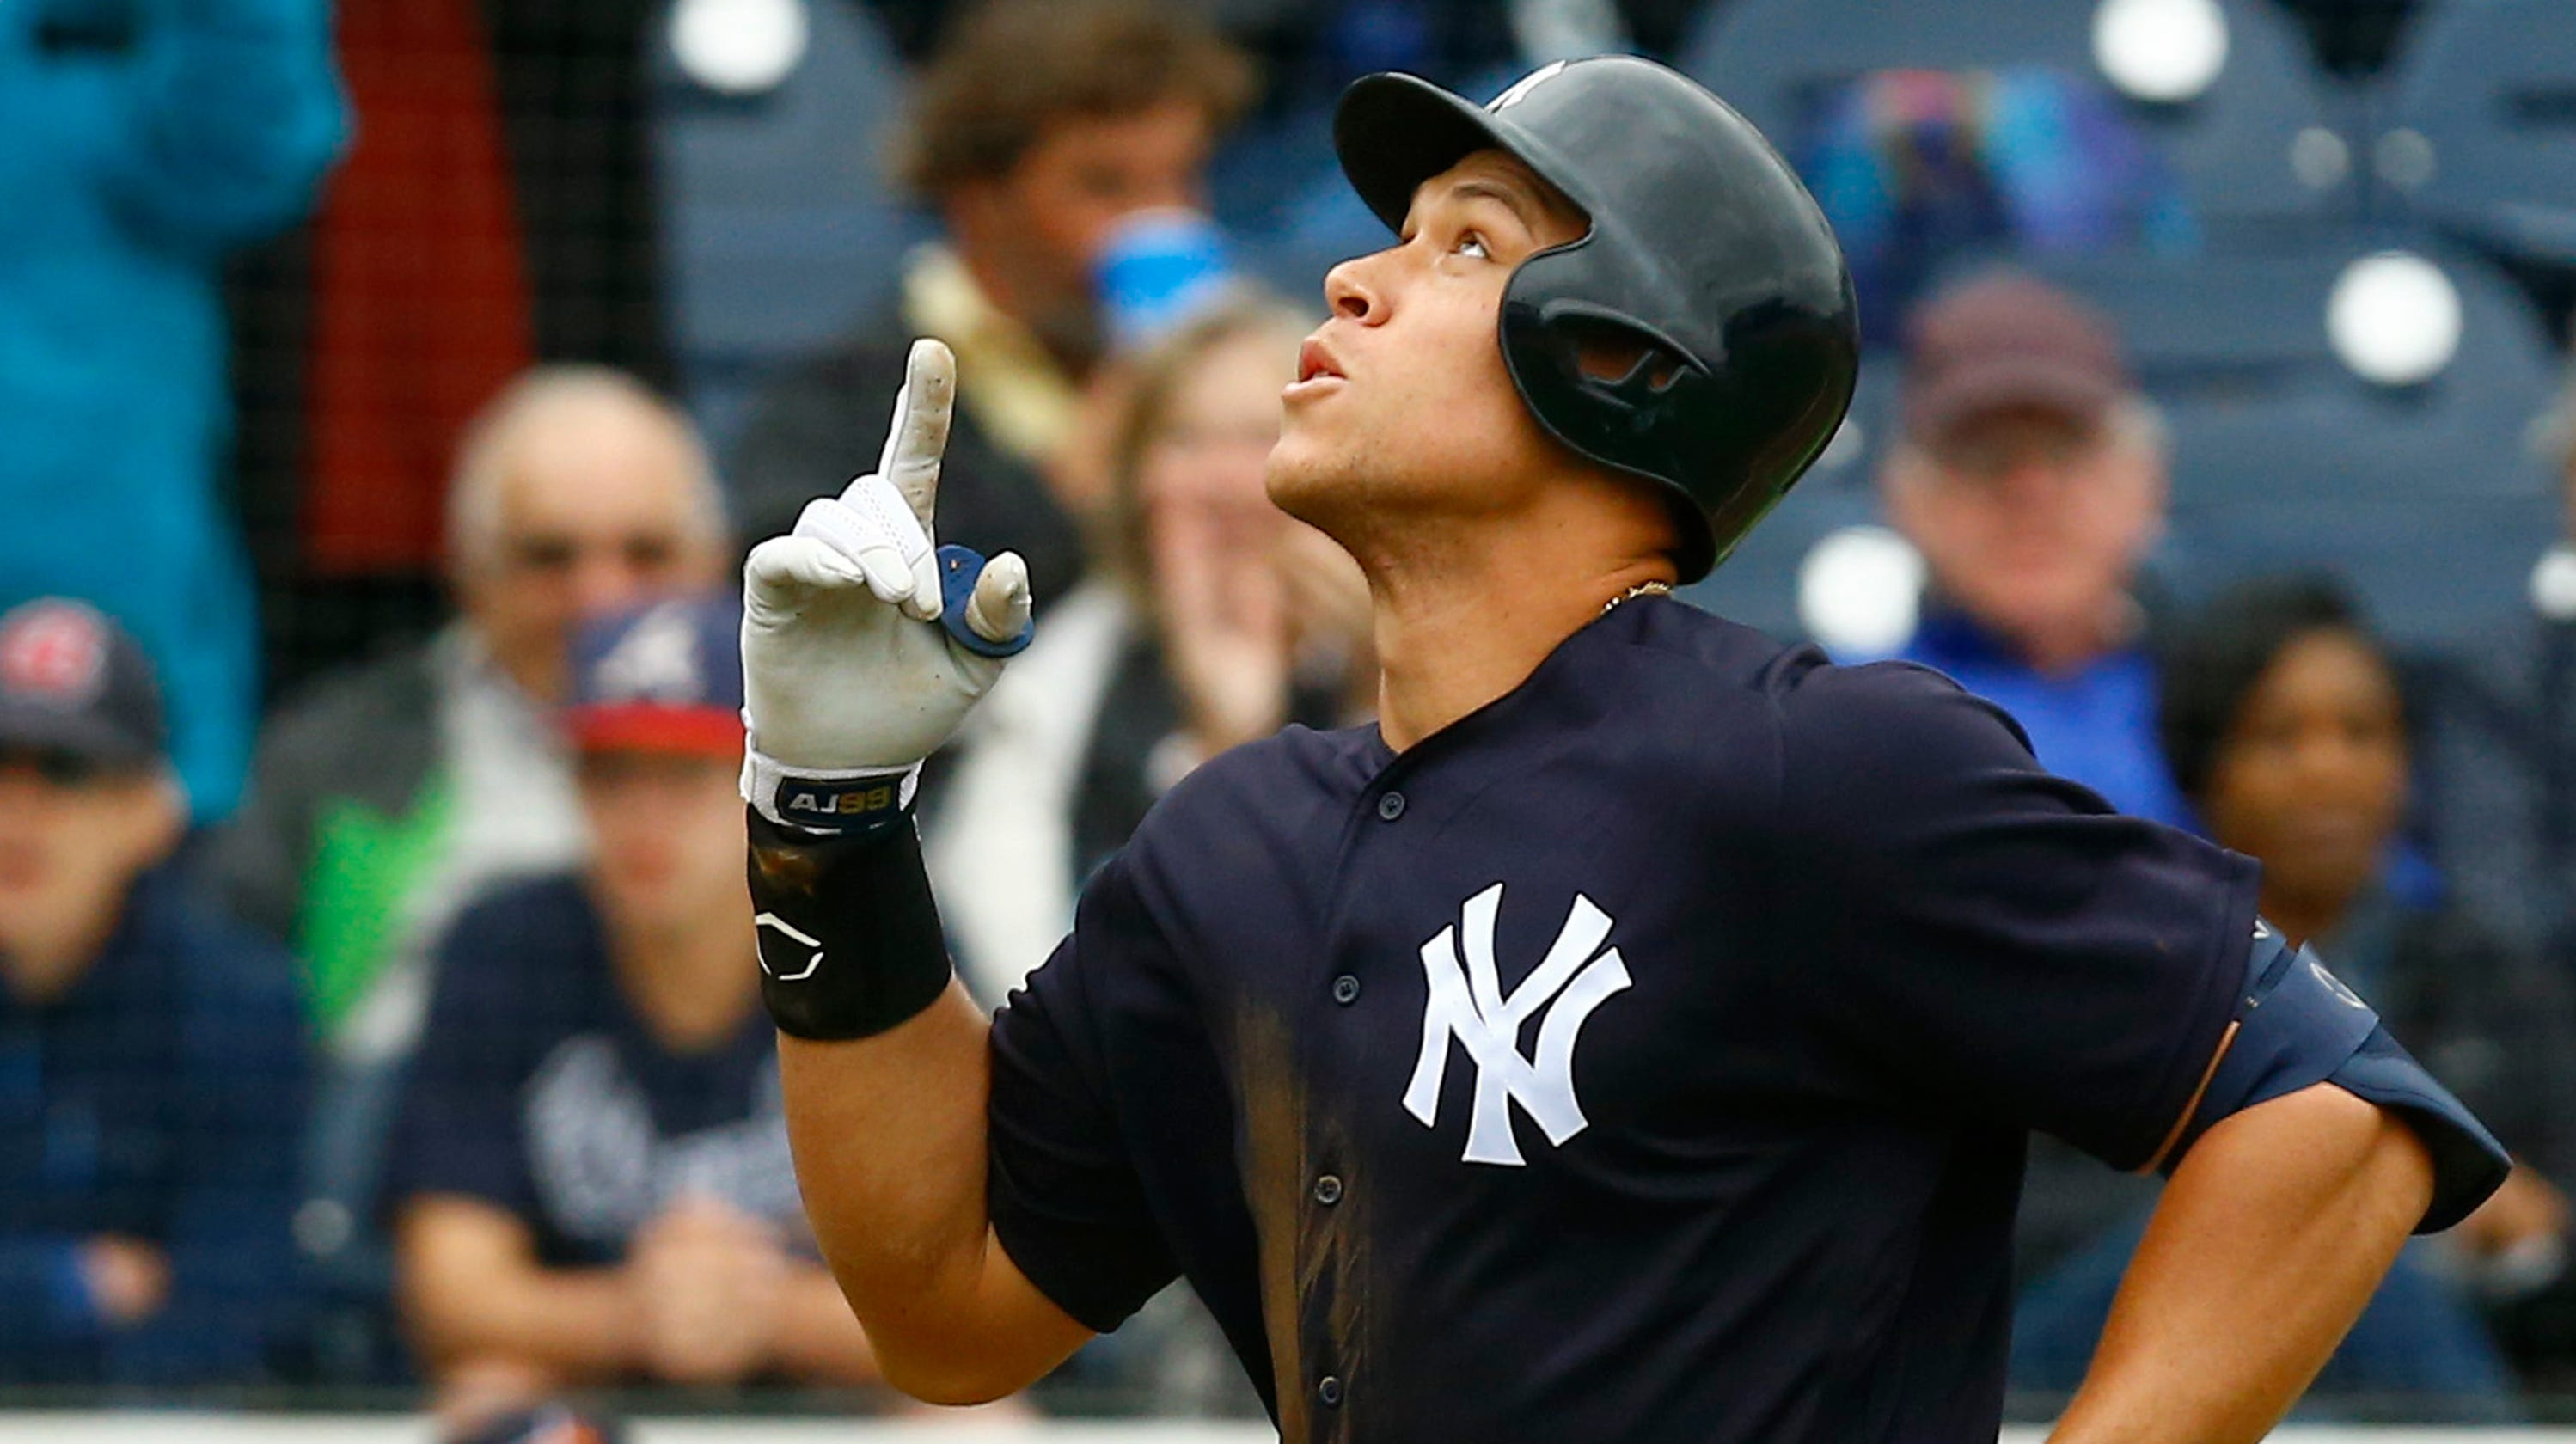 Mlb 2019 Aaron Judge Learns About Leagues Broken Salary